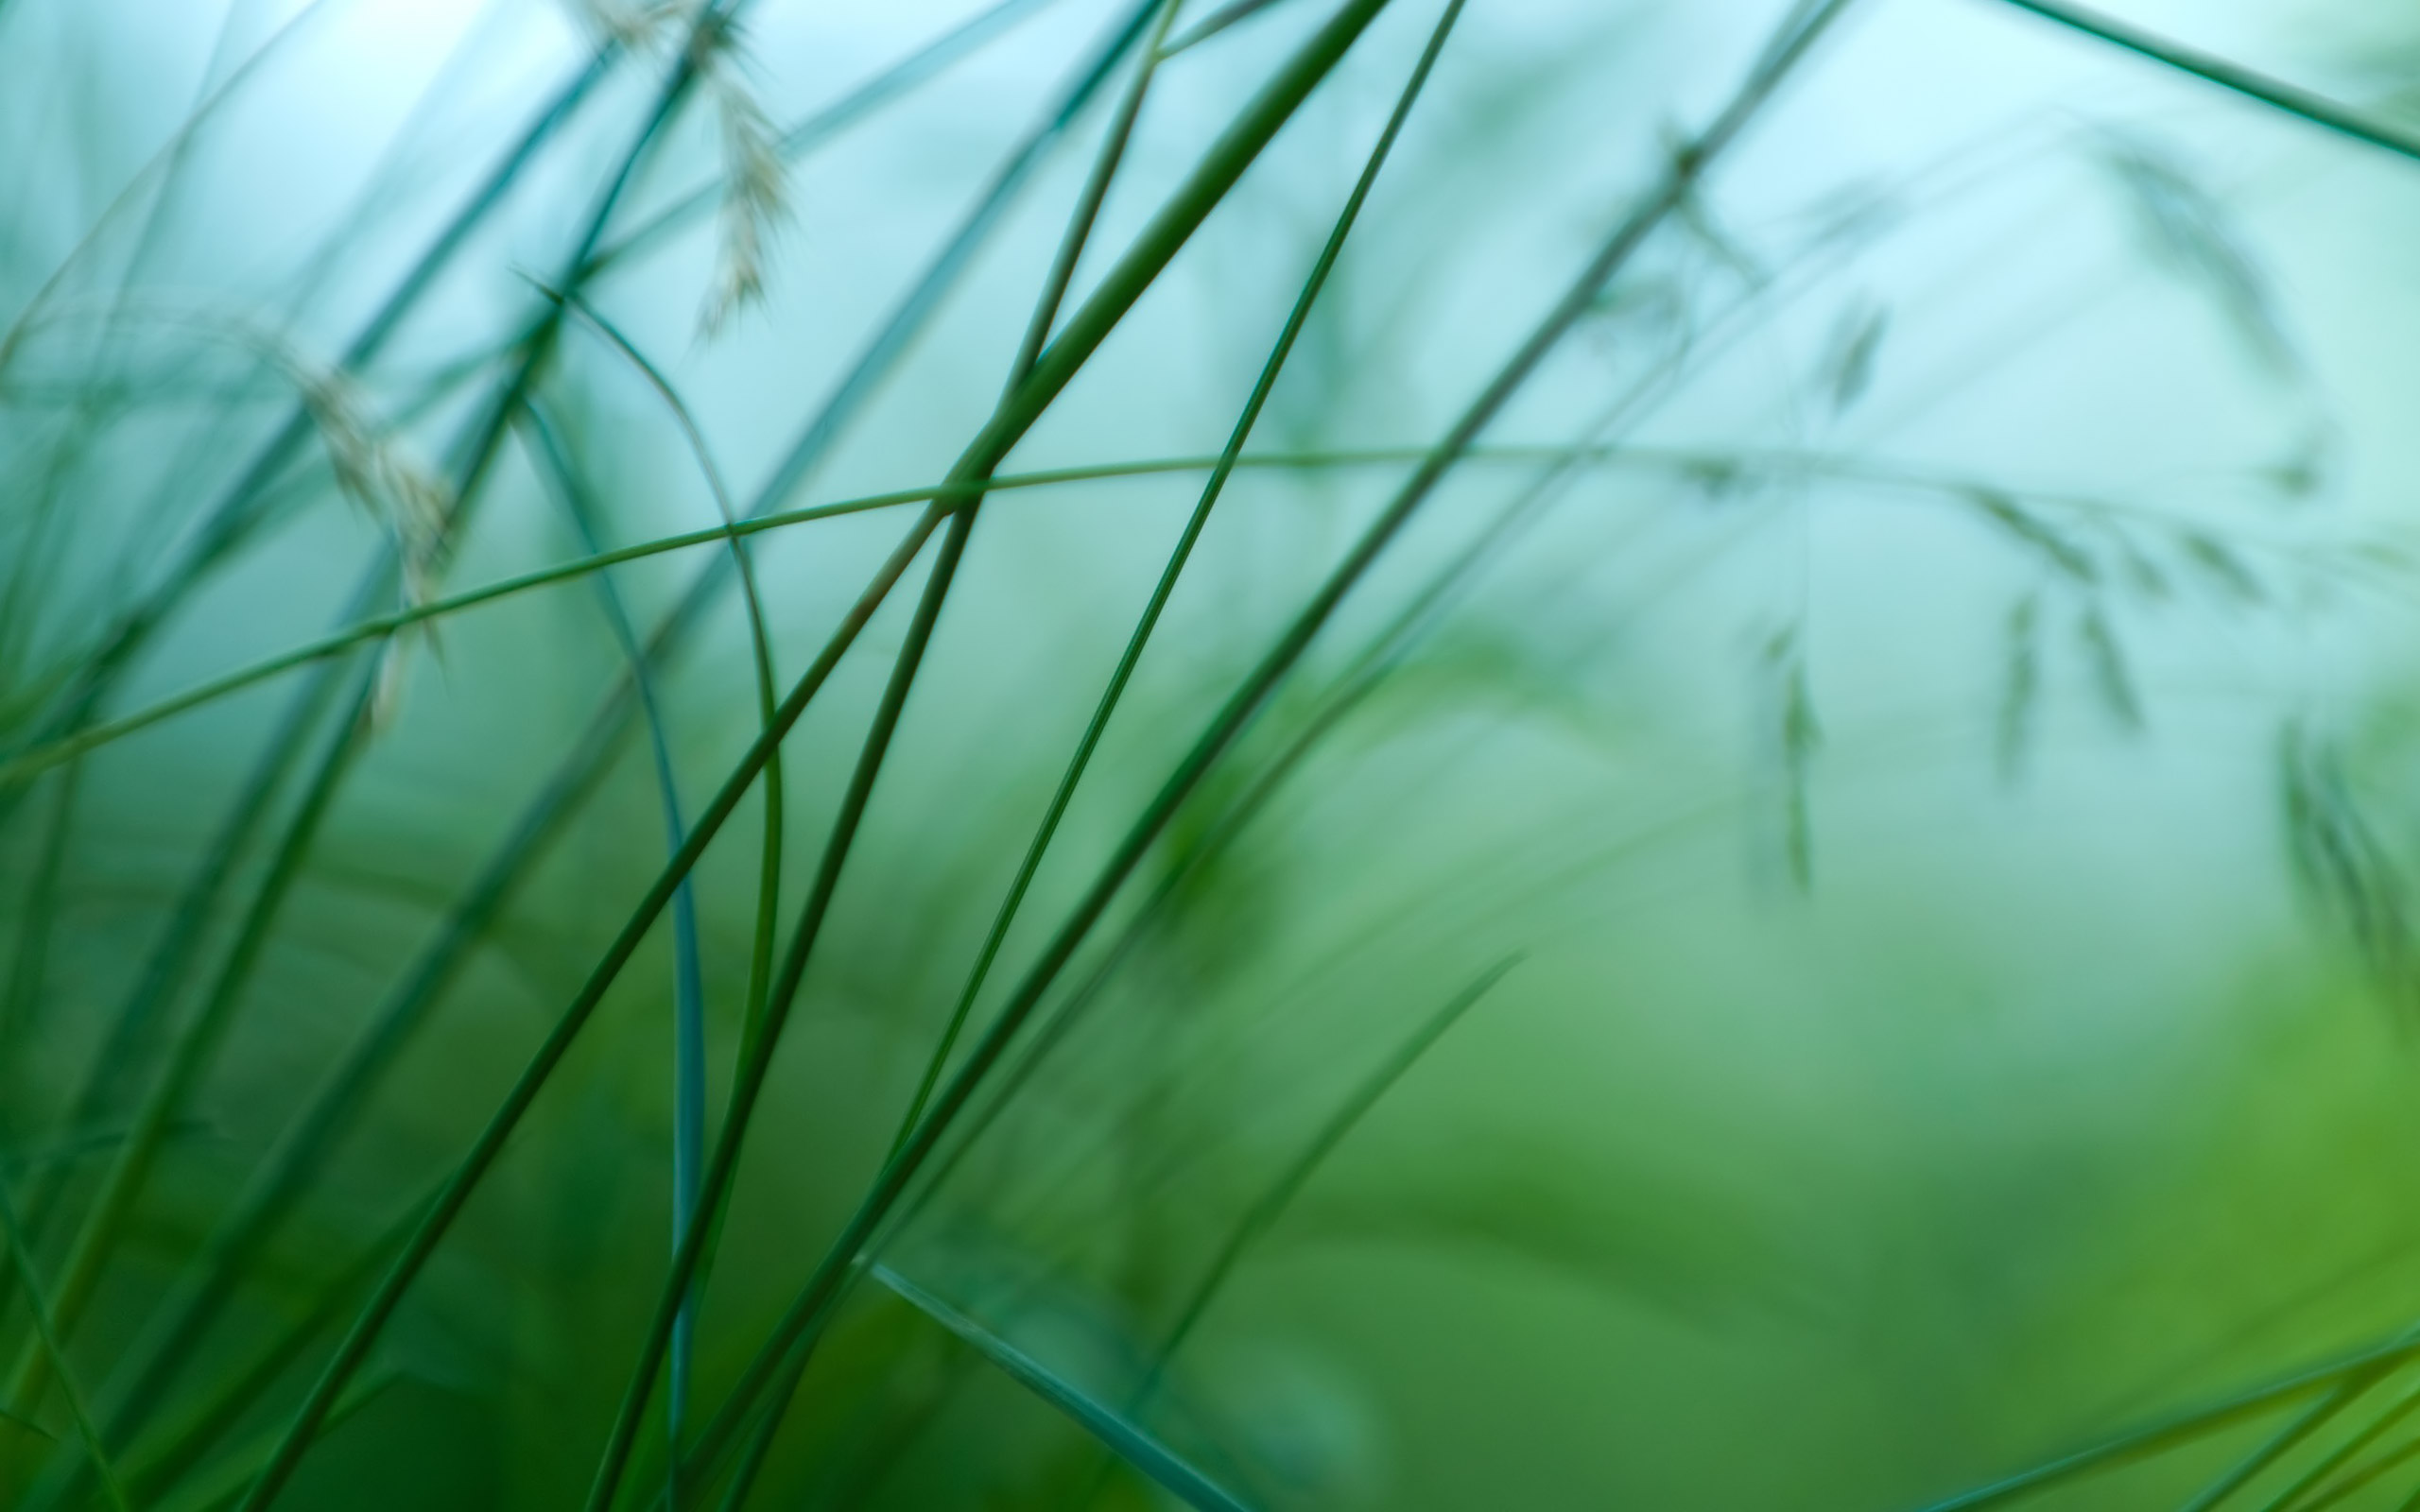 grass wallpaper simple